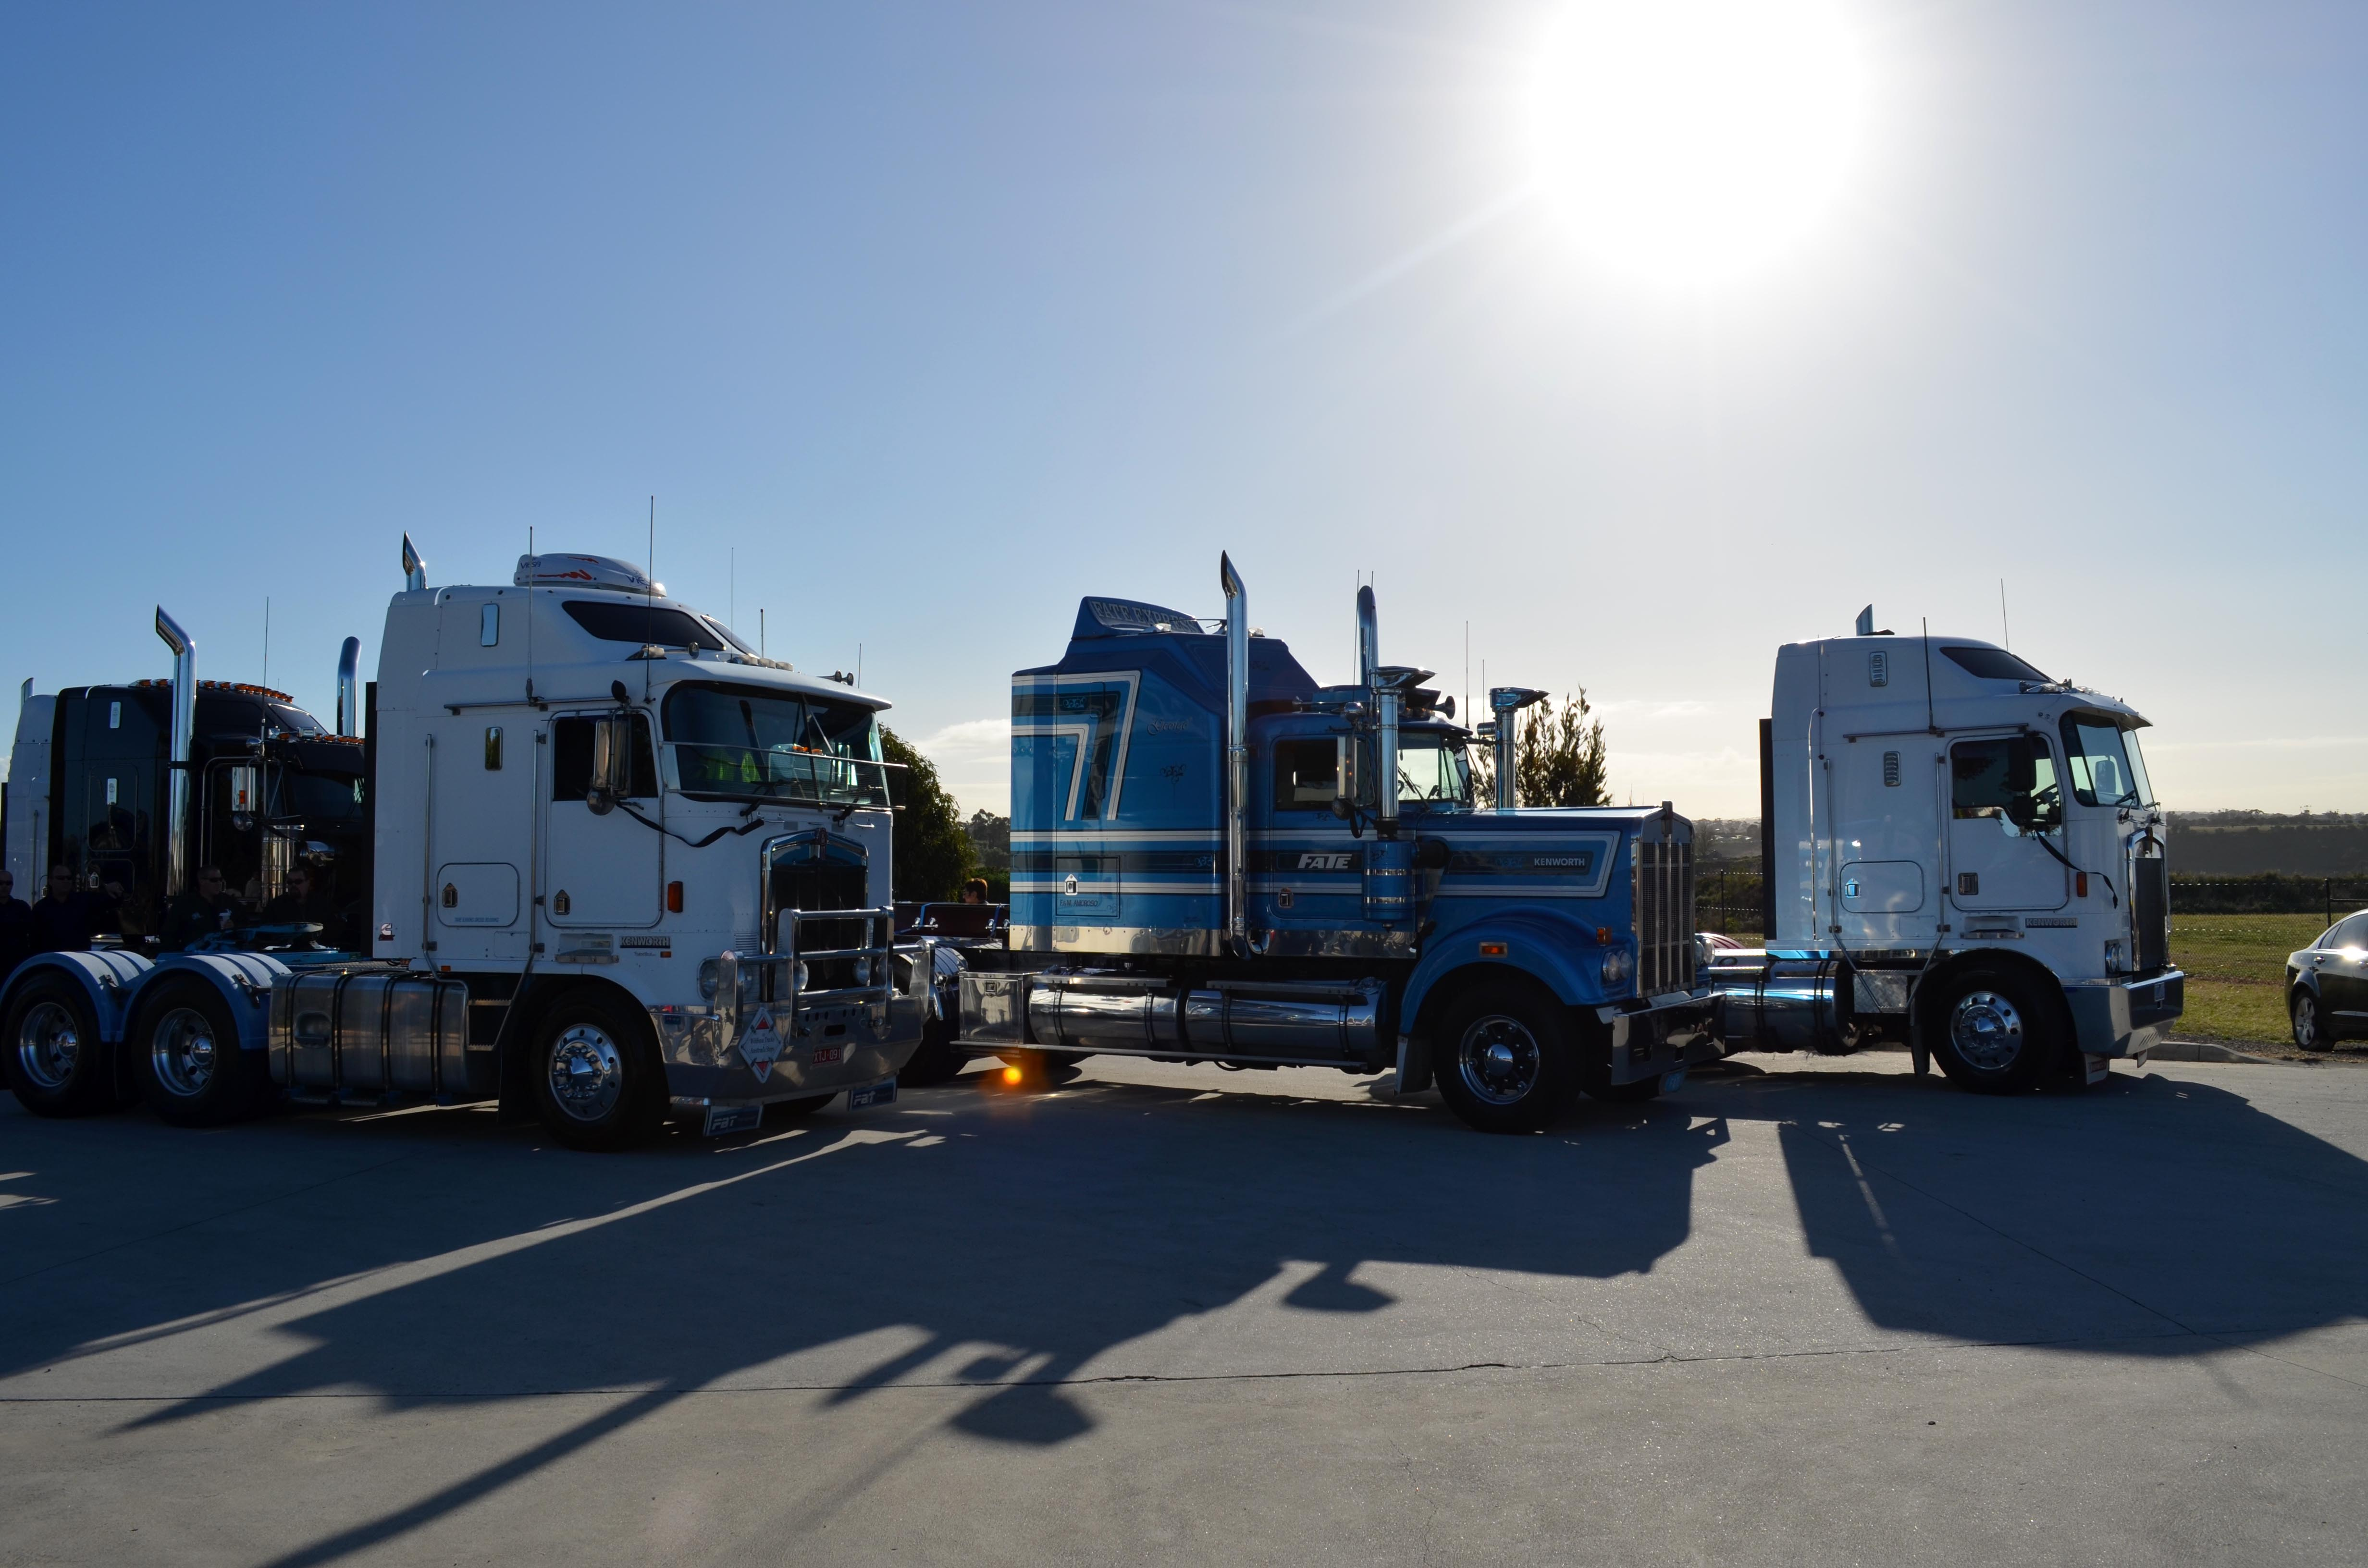 Httpsownerdriverindustry news1312truck and dogs 30054g fandeluxe Gallery